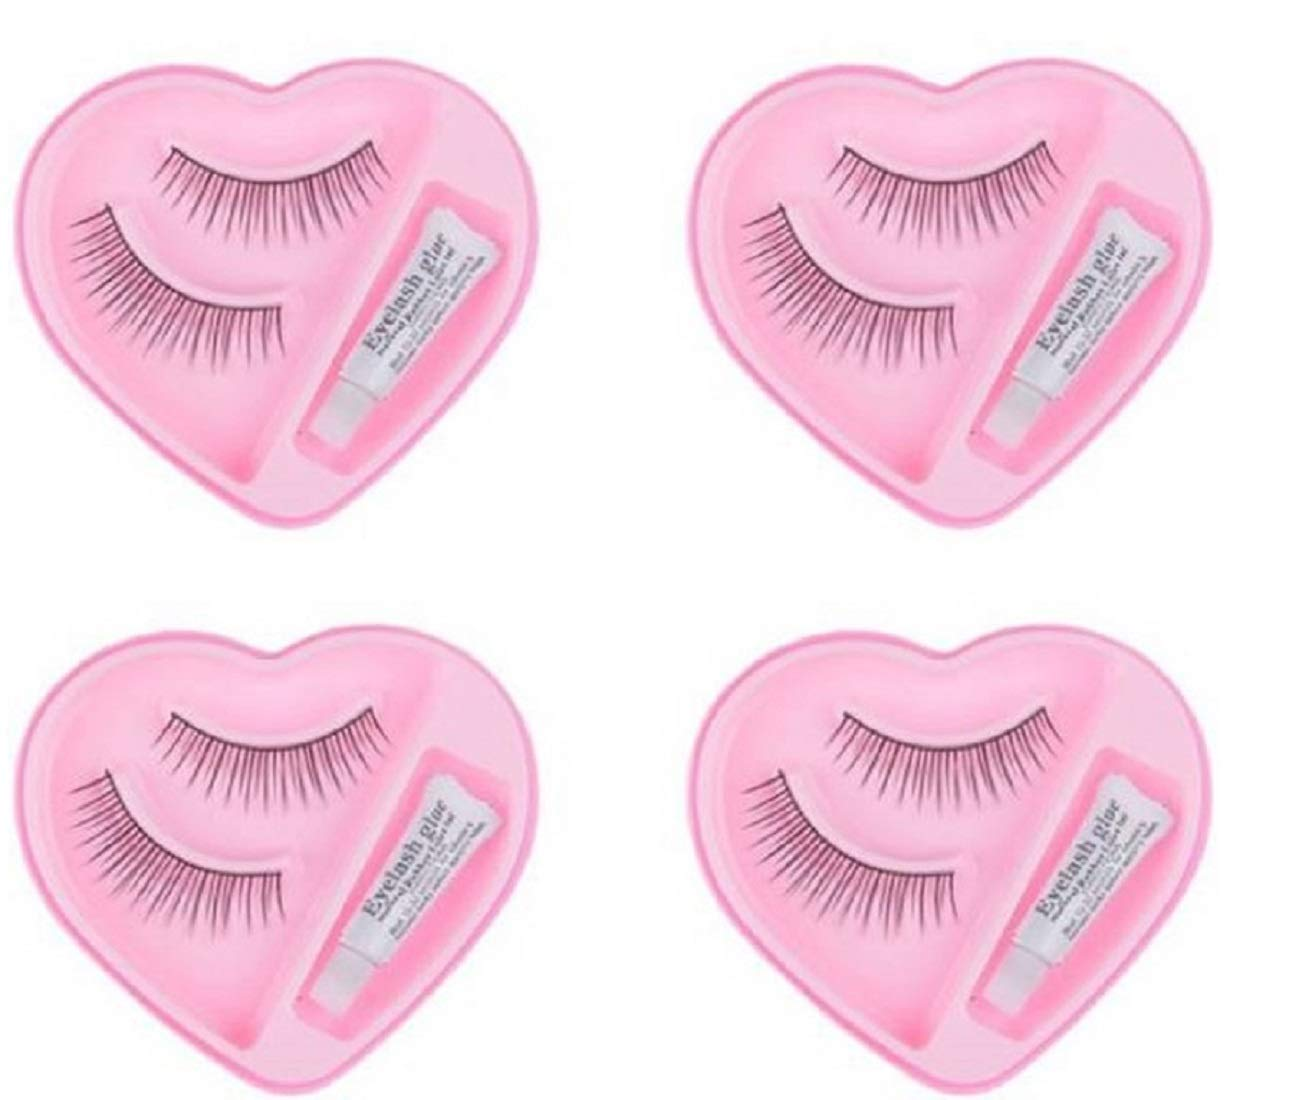 Buy Boldnyoung Black Long False Eyelashes With Glue For Pretty Eye